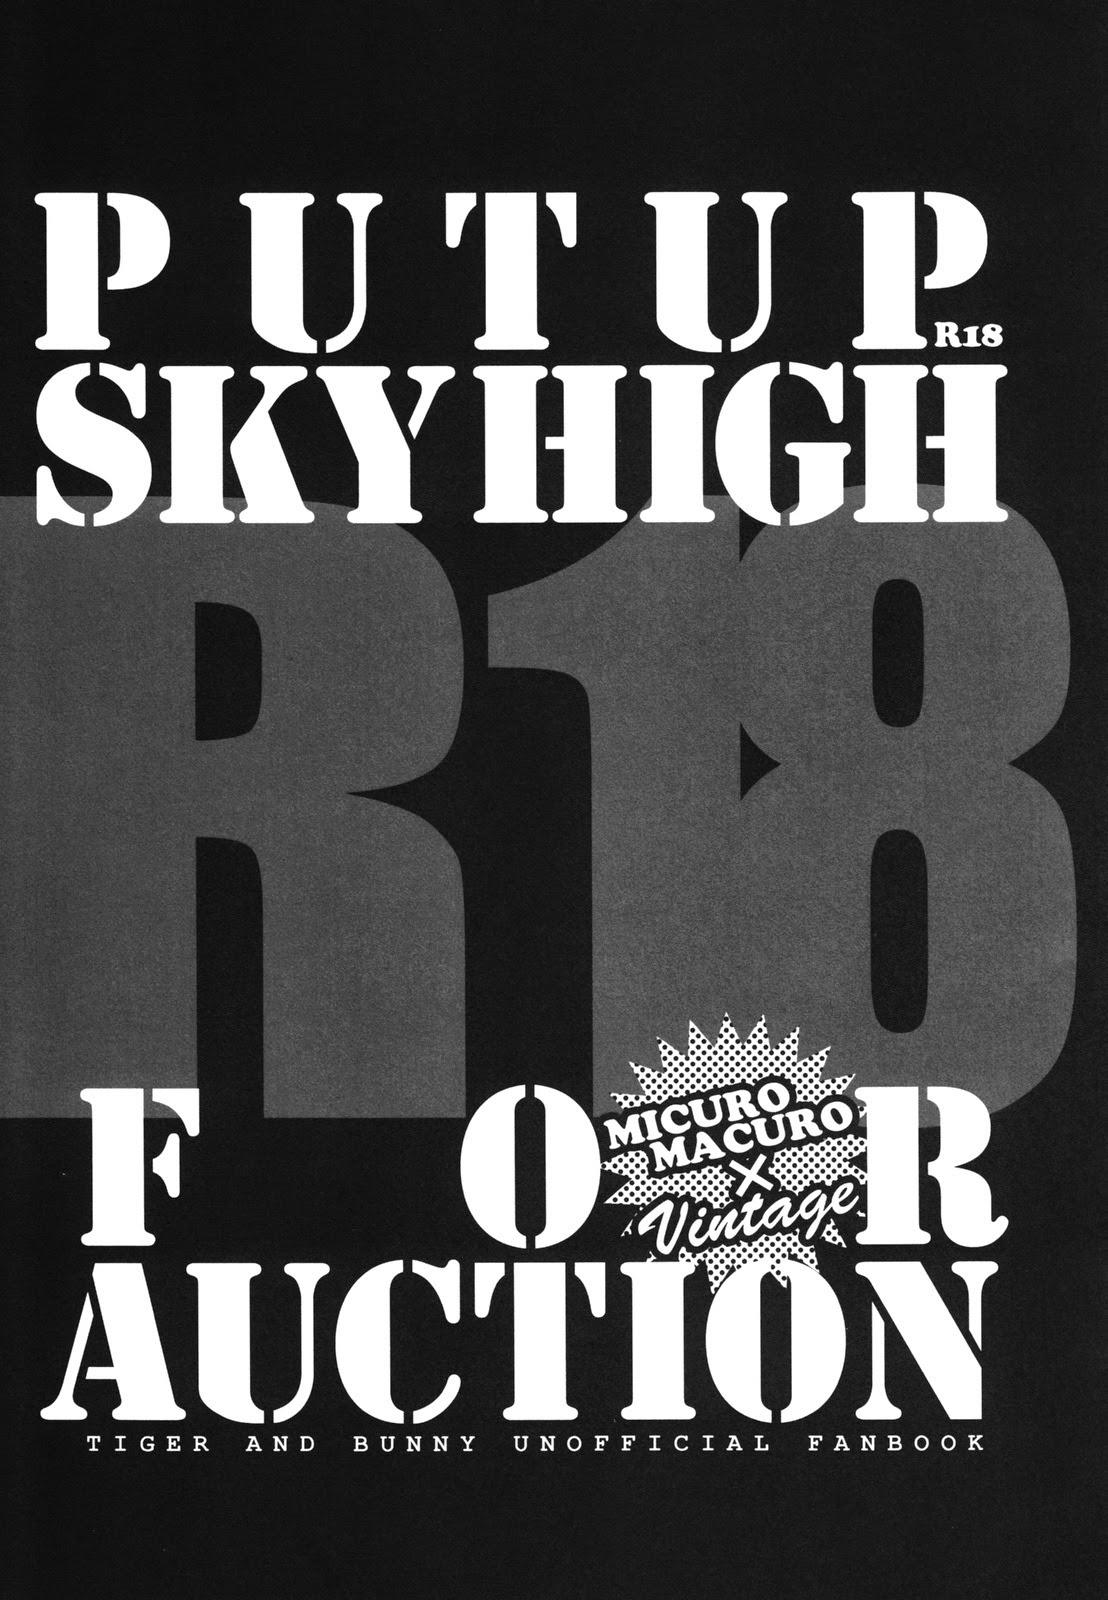 PUT UP SKYHIGH FOR AUCTION 1